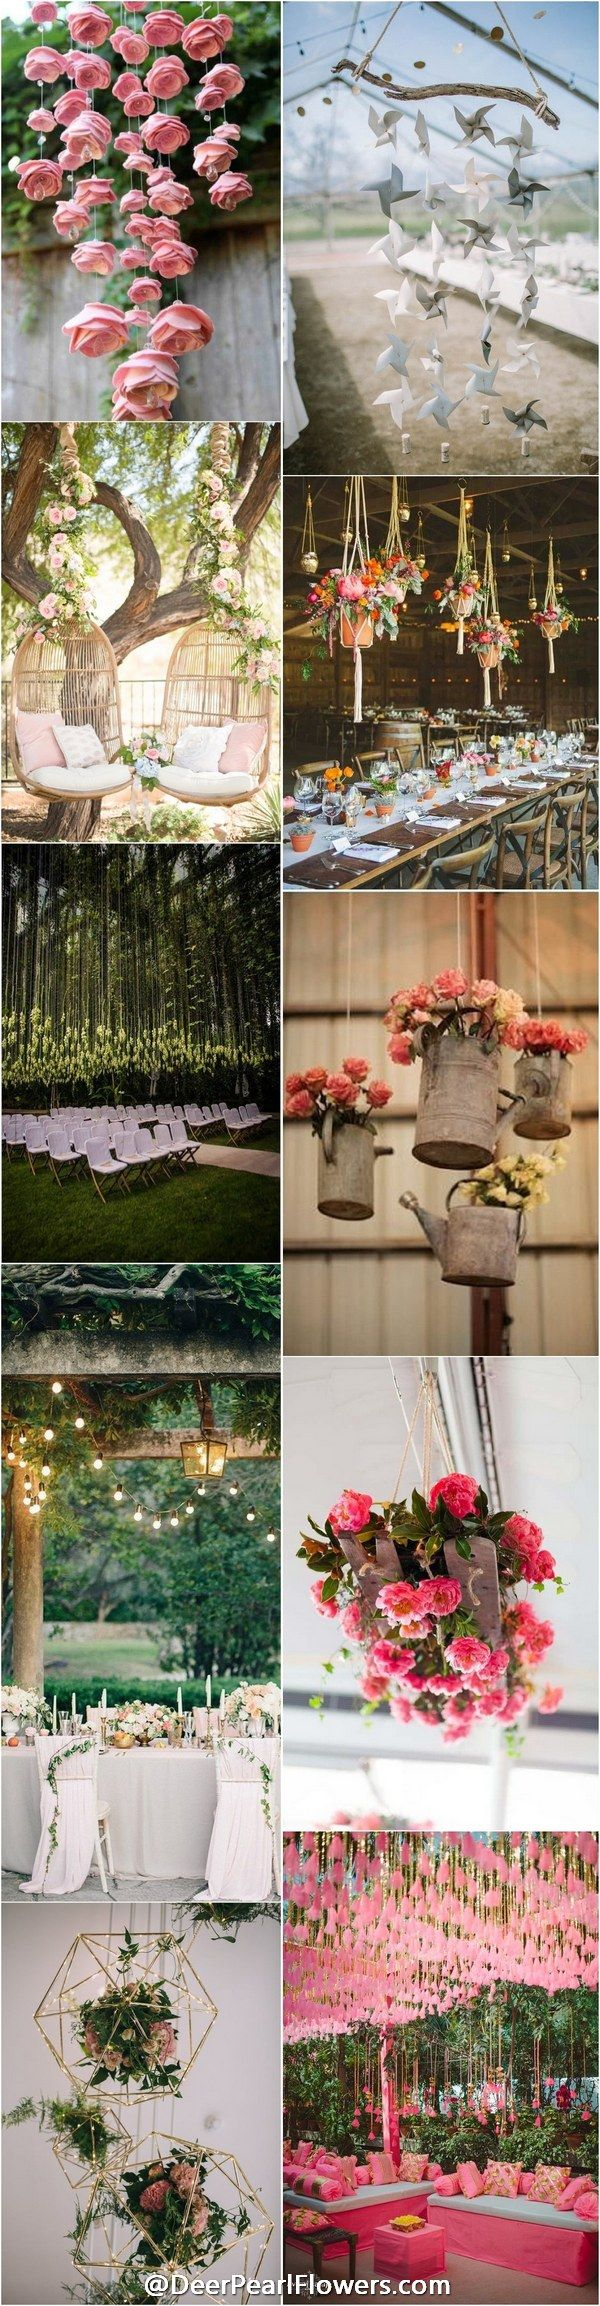 ideas for rustic wedding reception%0A Trends We LOVE     Hanging Wedding Decor Ideas